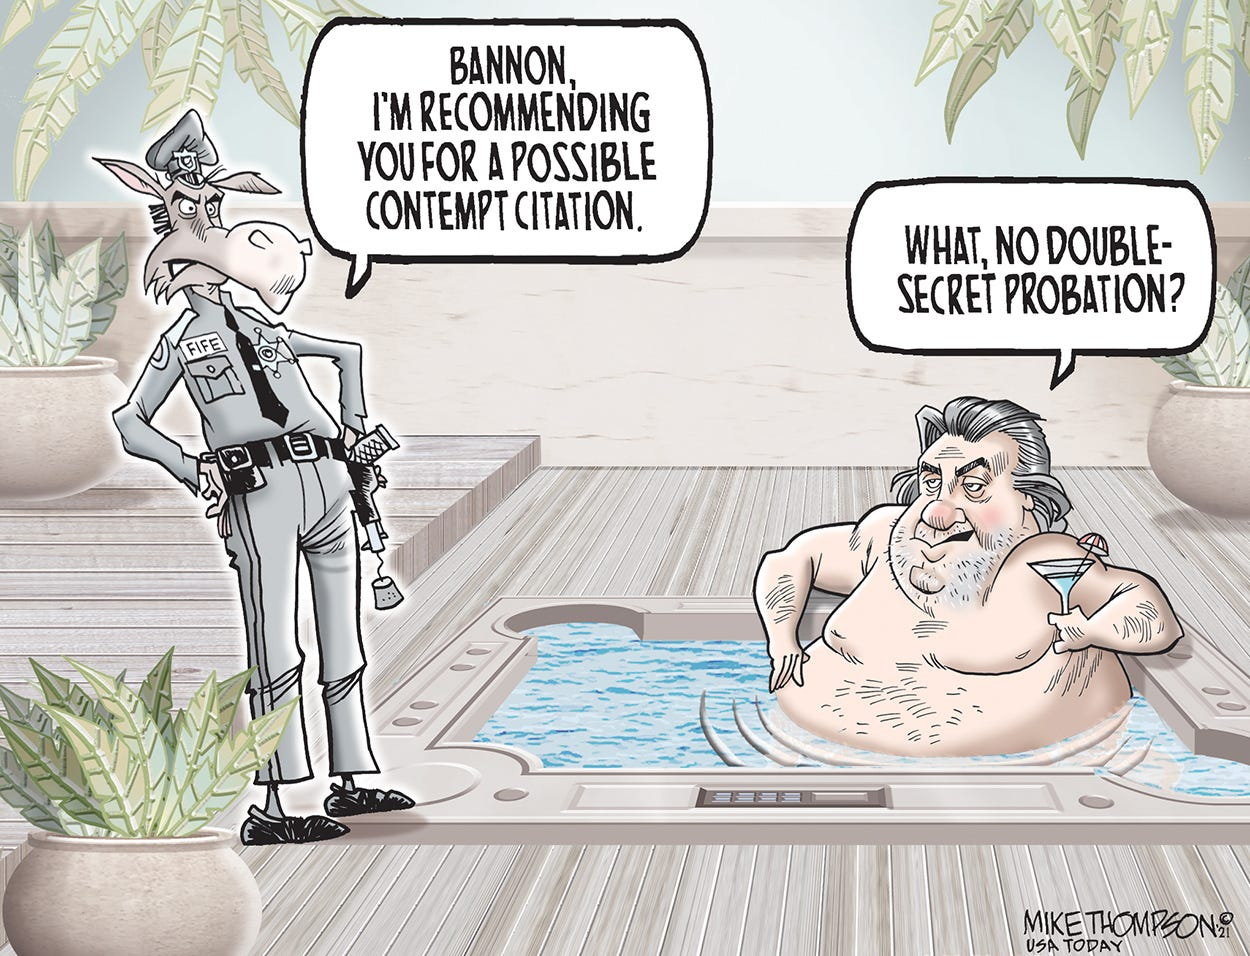 Democrats get tough on Bannon: Mike Thompson toon